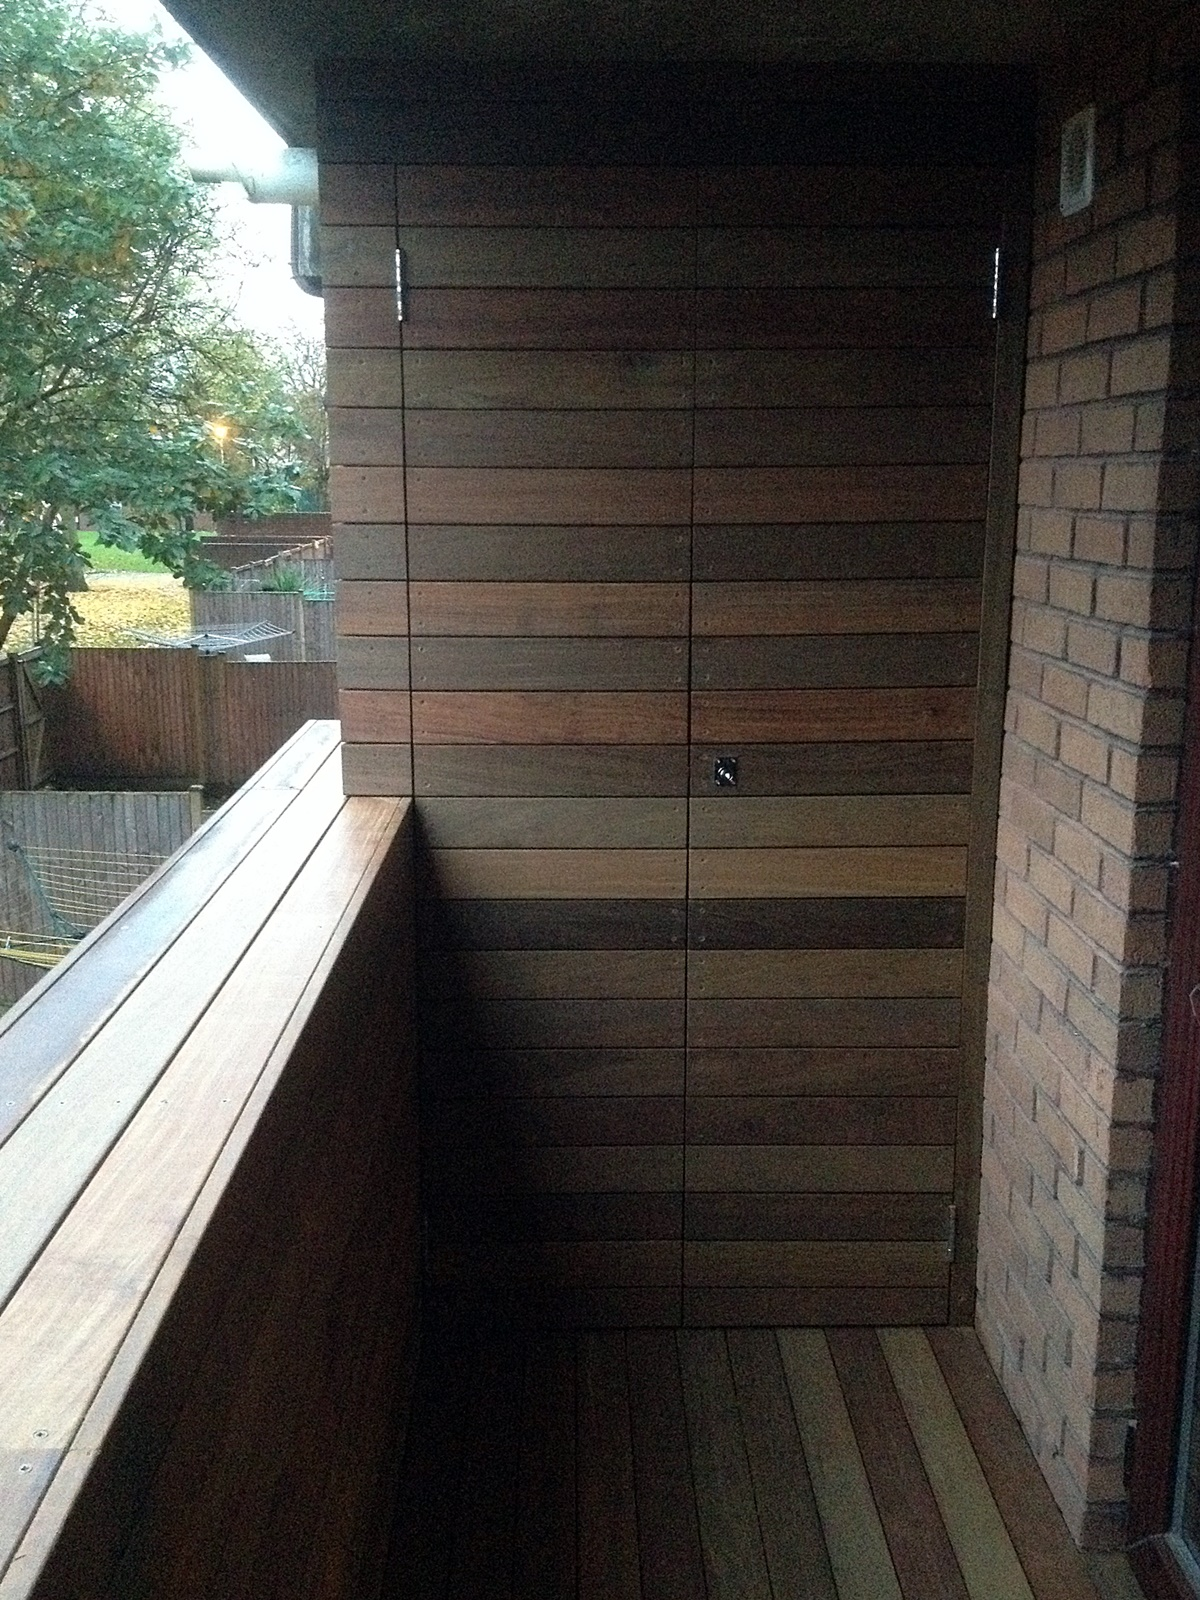 Bespoke hardwood storage unit balcony roof terrace ipe for Balcony terrace